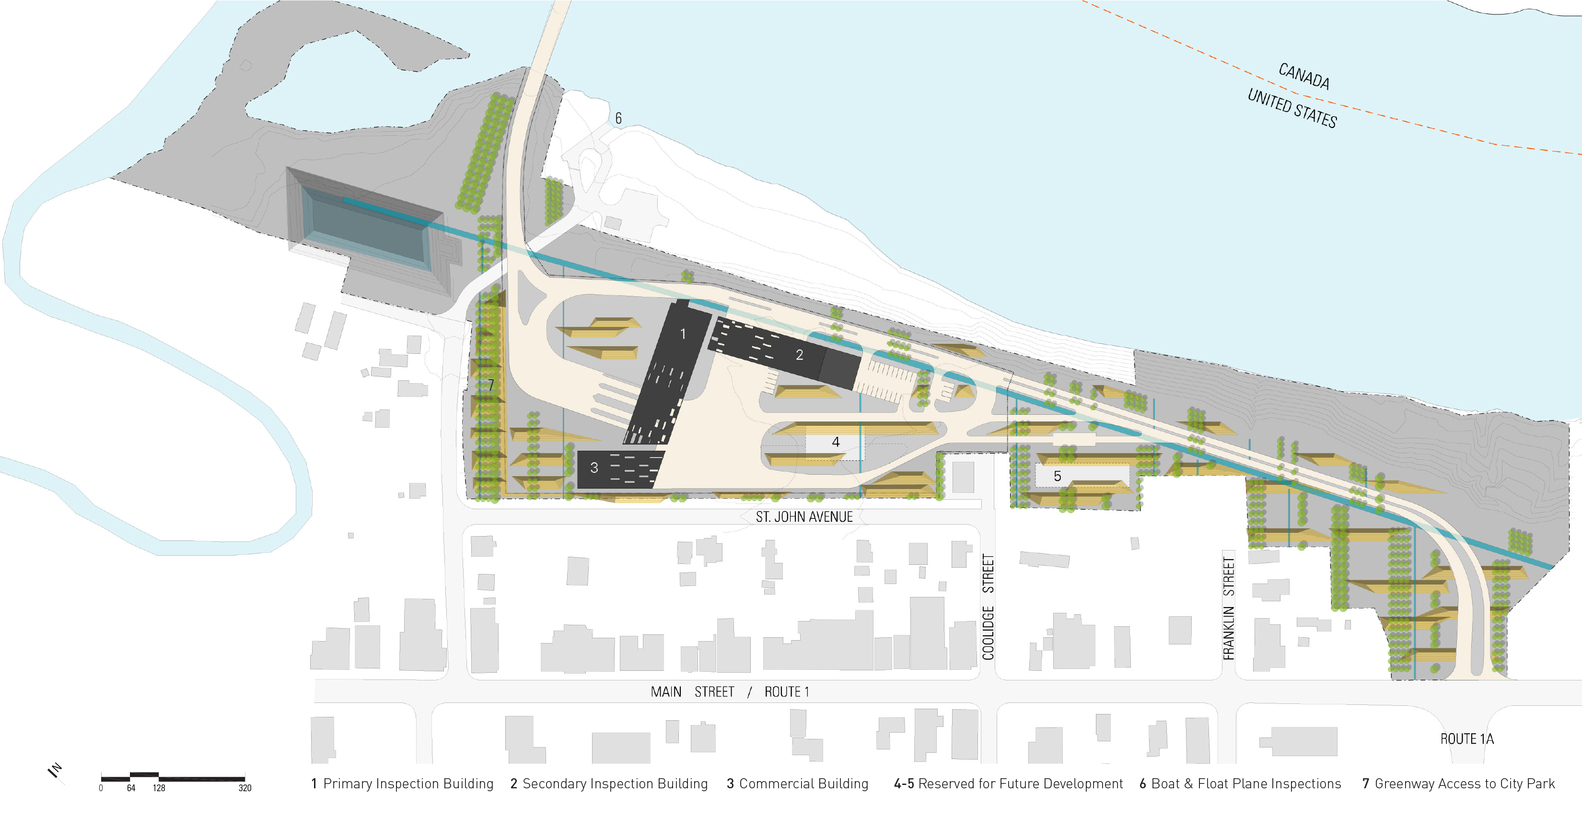 Gallery Of Us Land Port Of Entry Snow Kreilich Architects 15 - Us-ports-of-entry-map